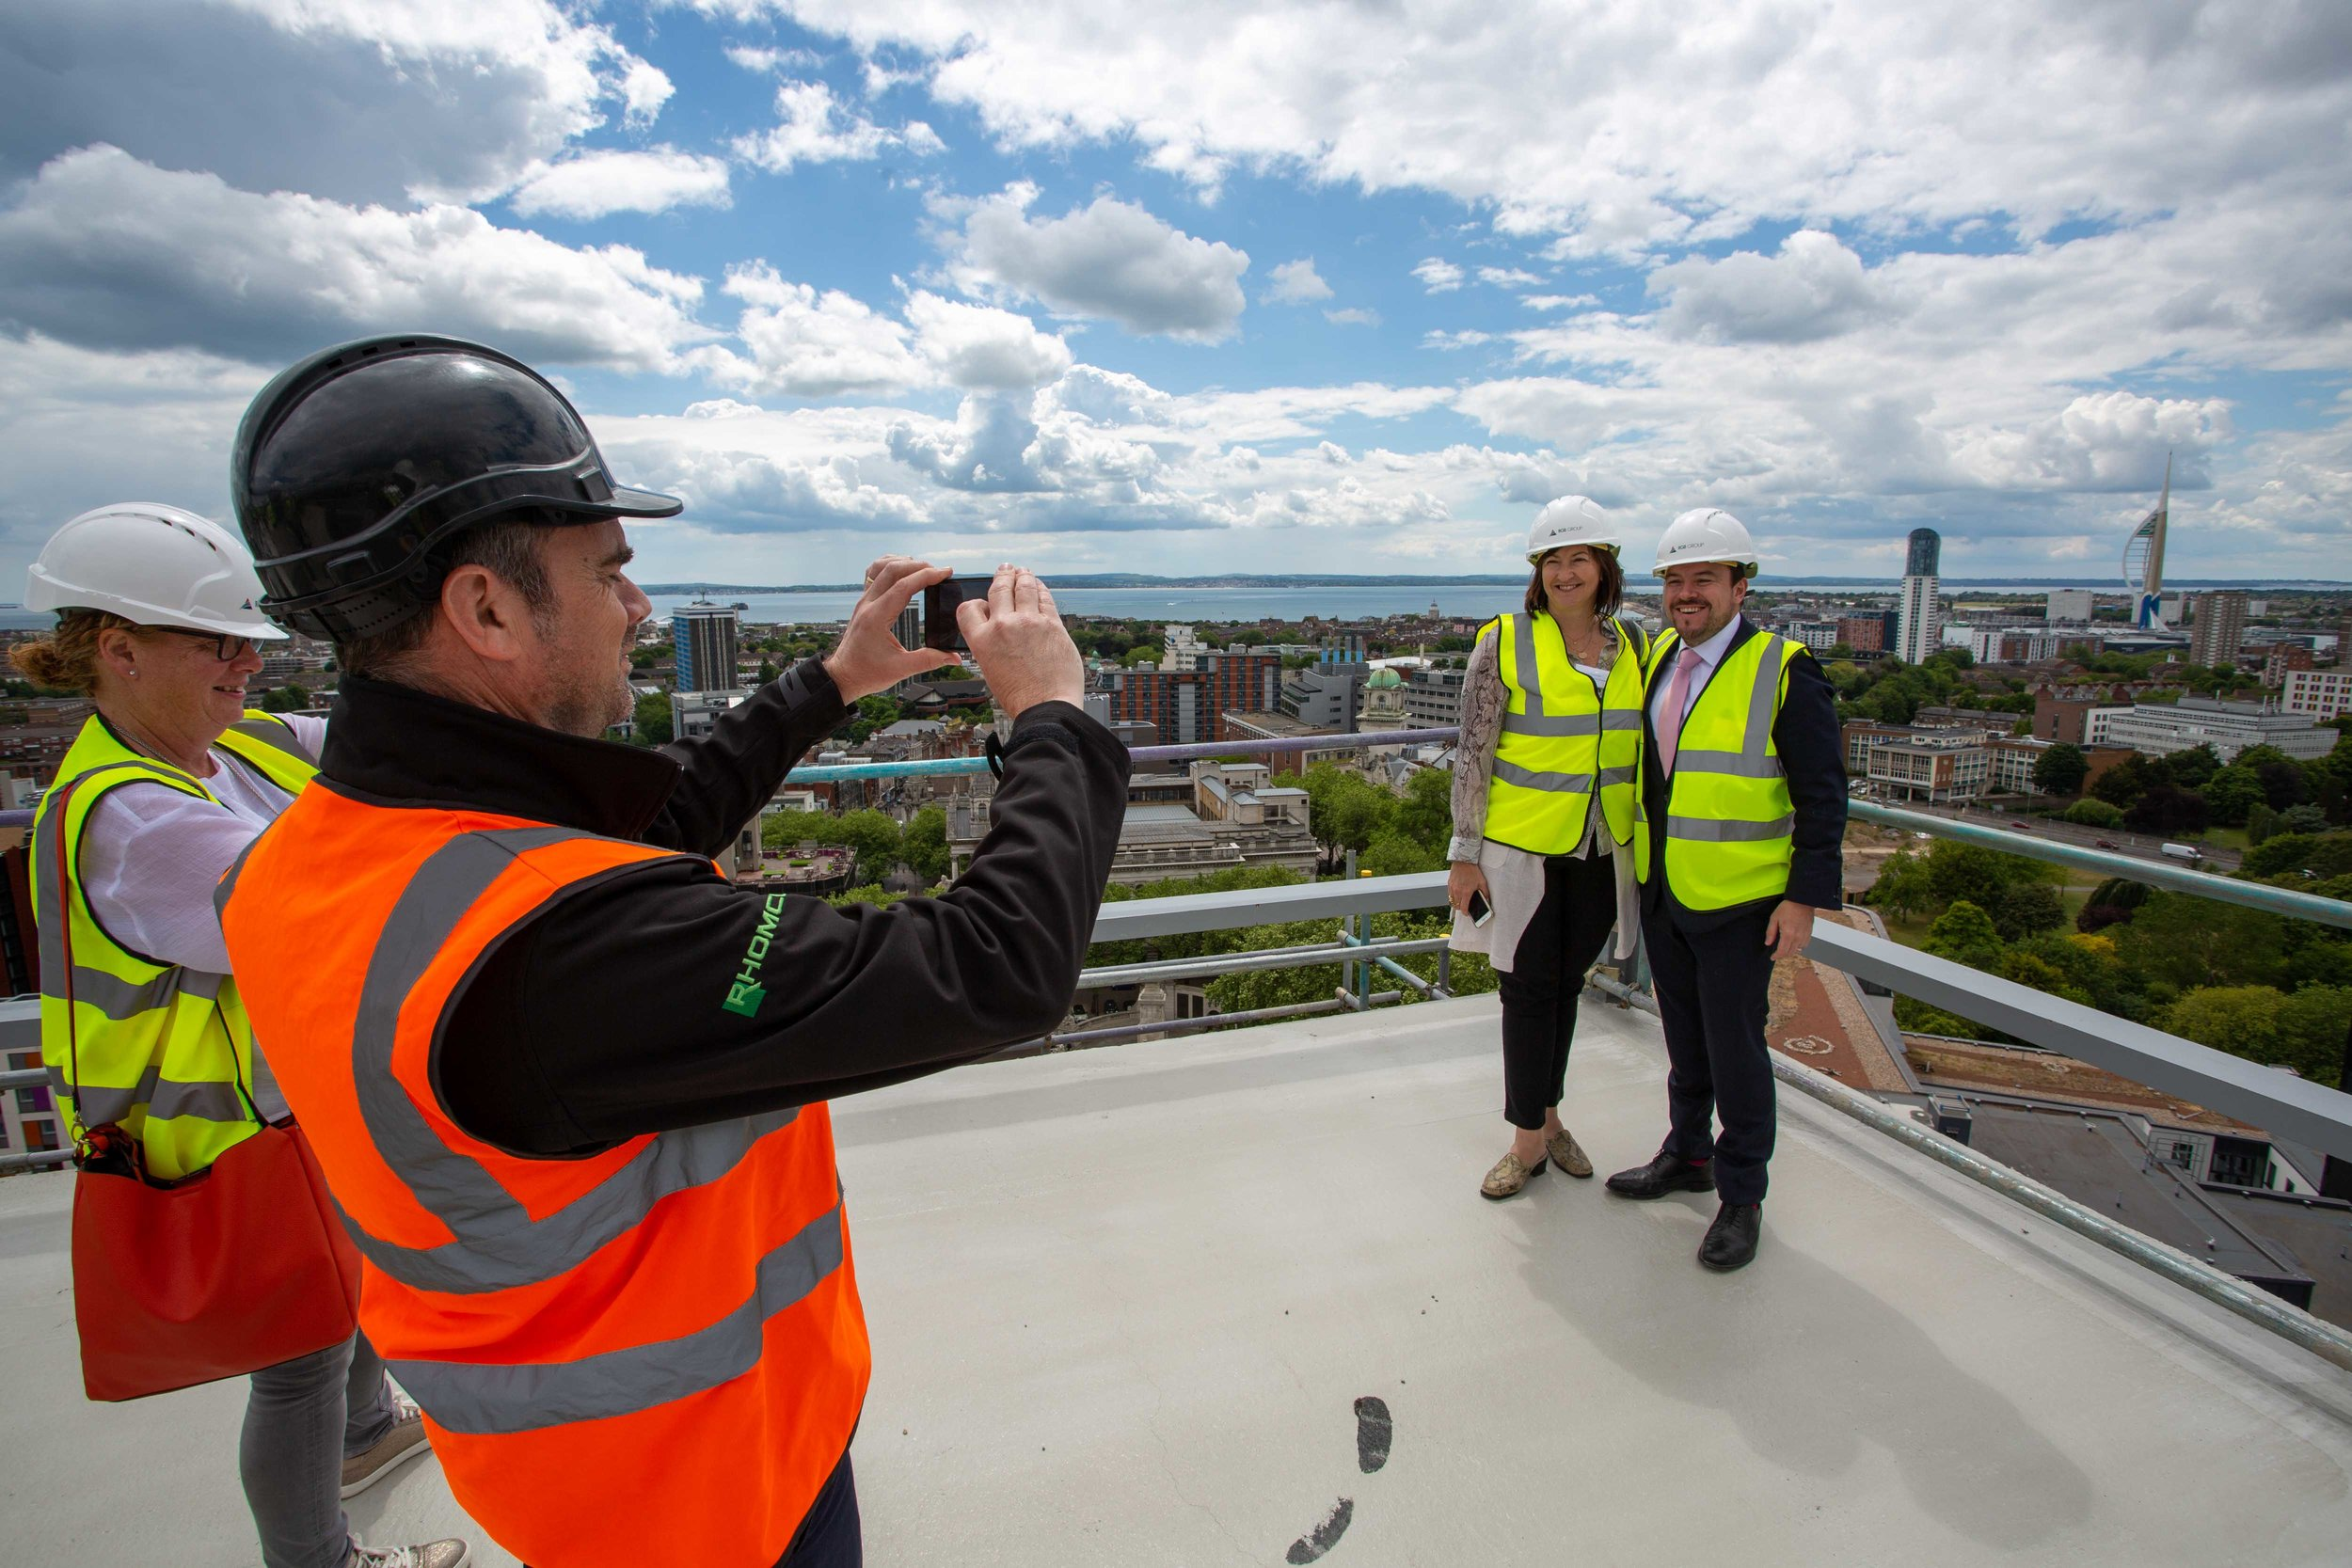 Stanhope House Topping Out 28.05.19 - Solent Sky Services--66.JPG